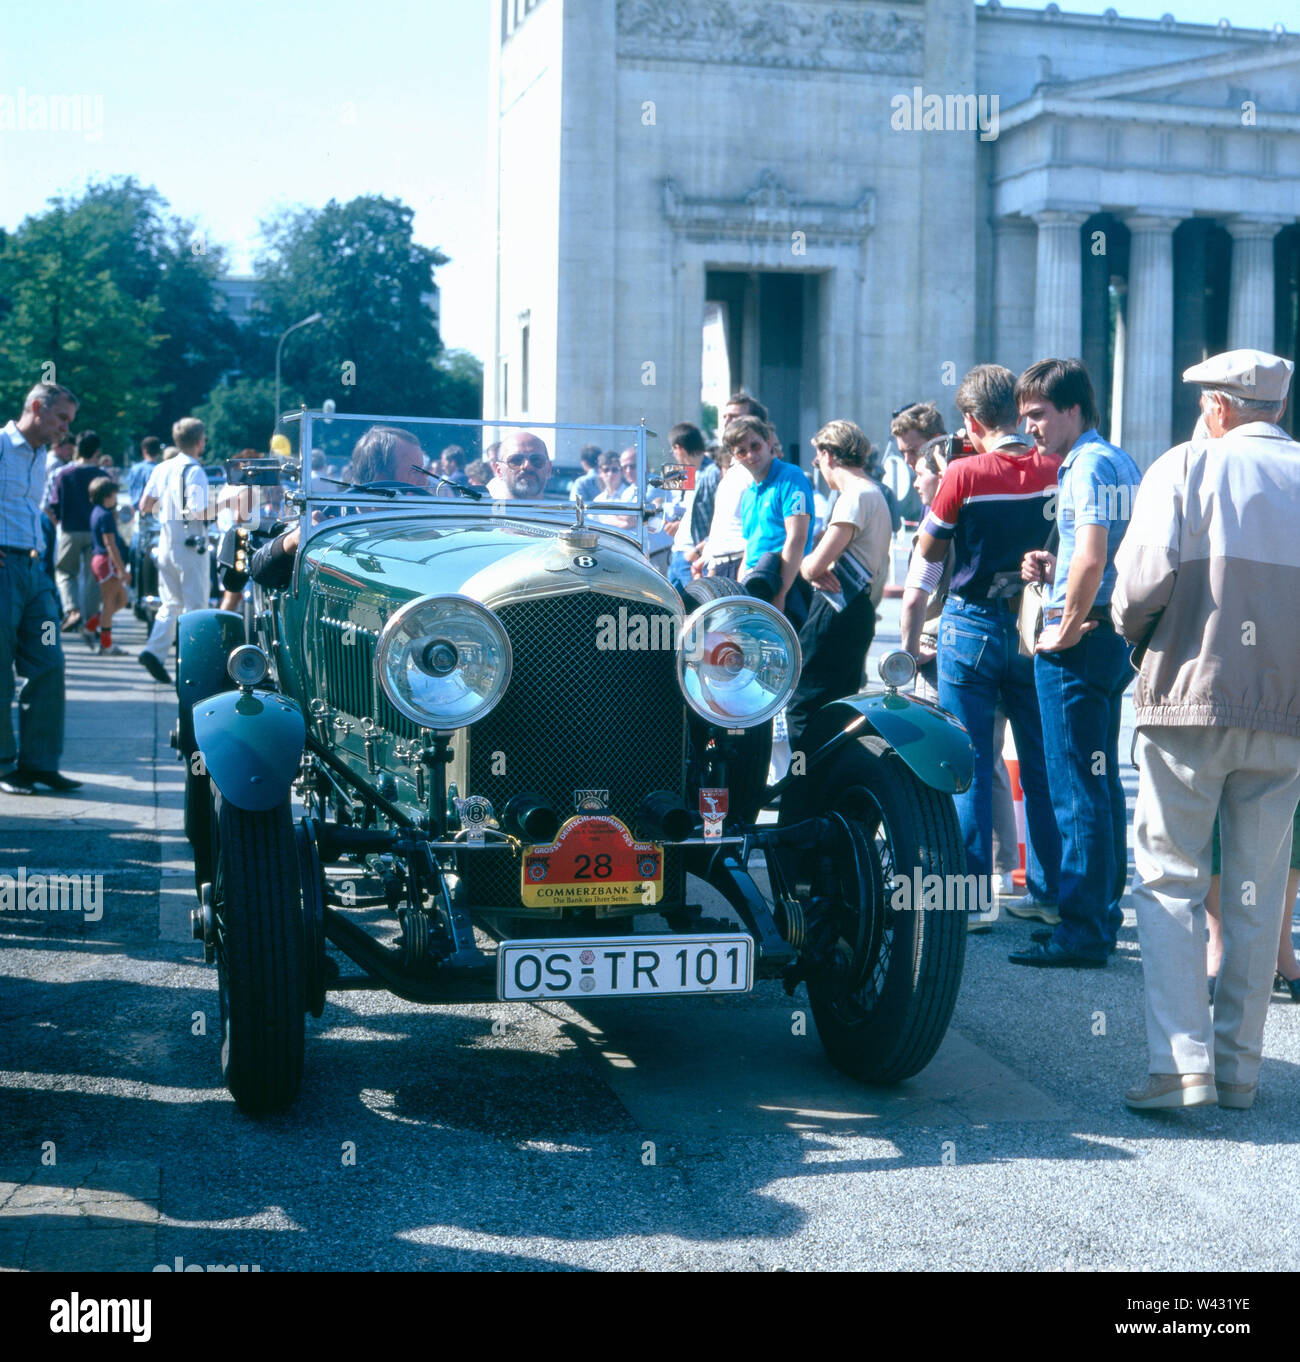 Ein Bentley 4,5 Lt. fährt durch die Münchner Innenstadt Ende der 1980er Jahre. A Bentley 4.5 Lt. drives through the center of Munich at the end of the 1980s. - Stock Image